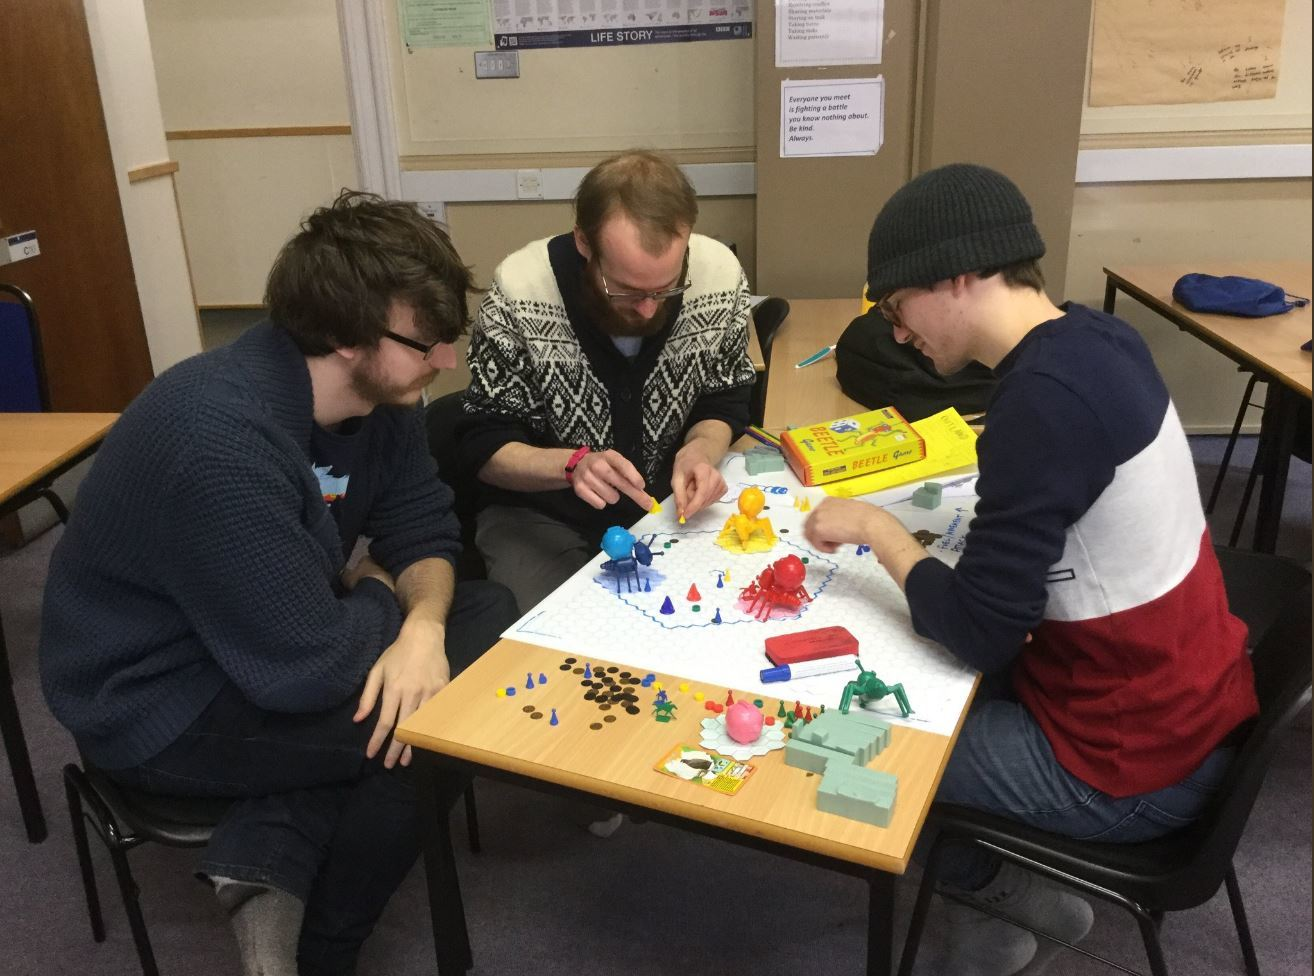 Artists and game designers participating in the 2018 Moray Game Jam at Moray College.